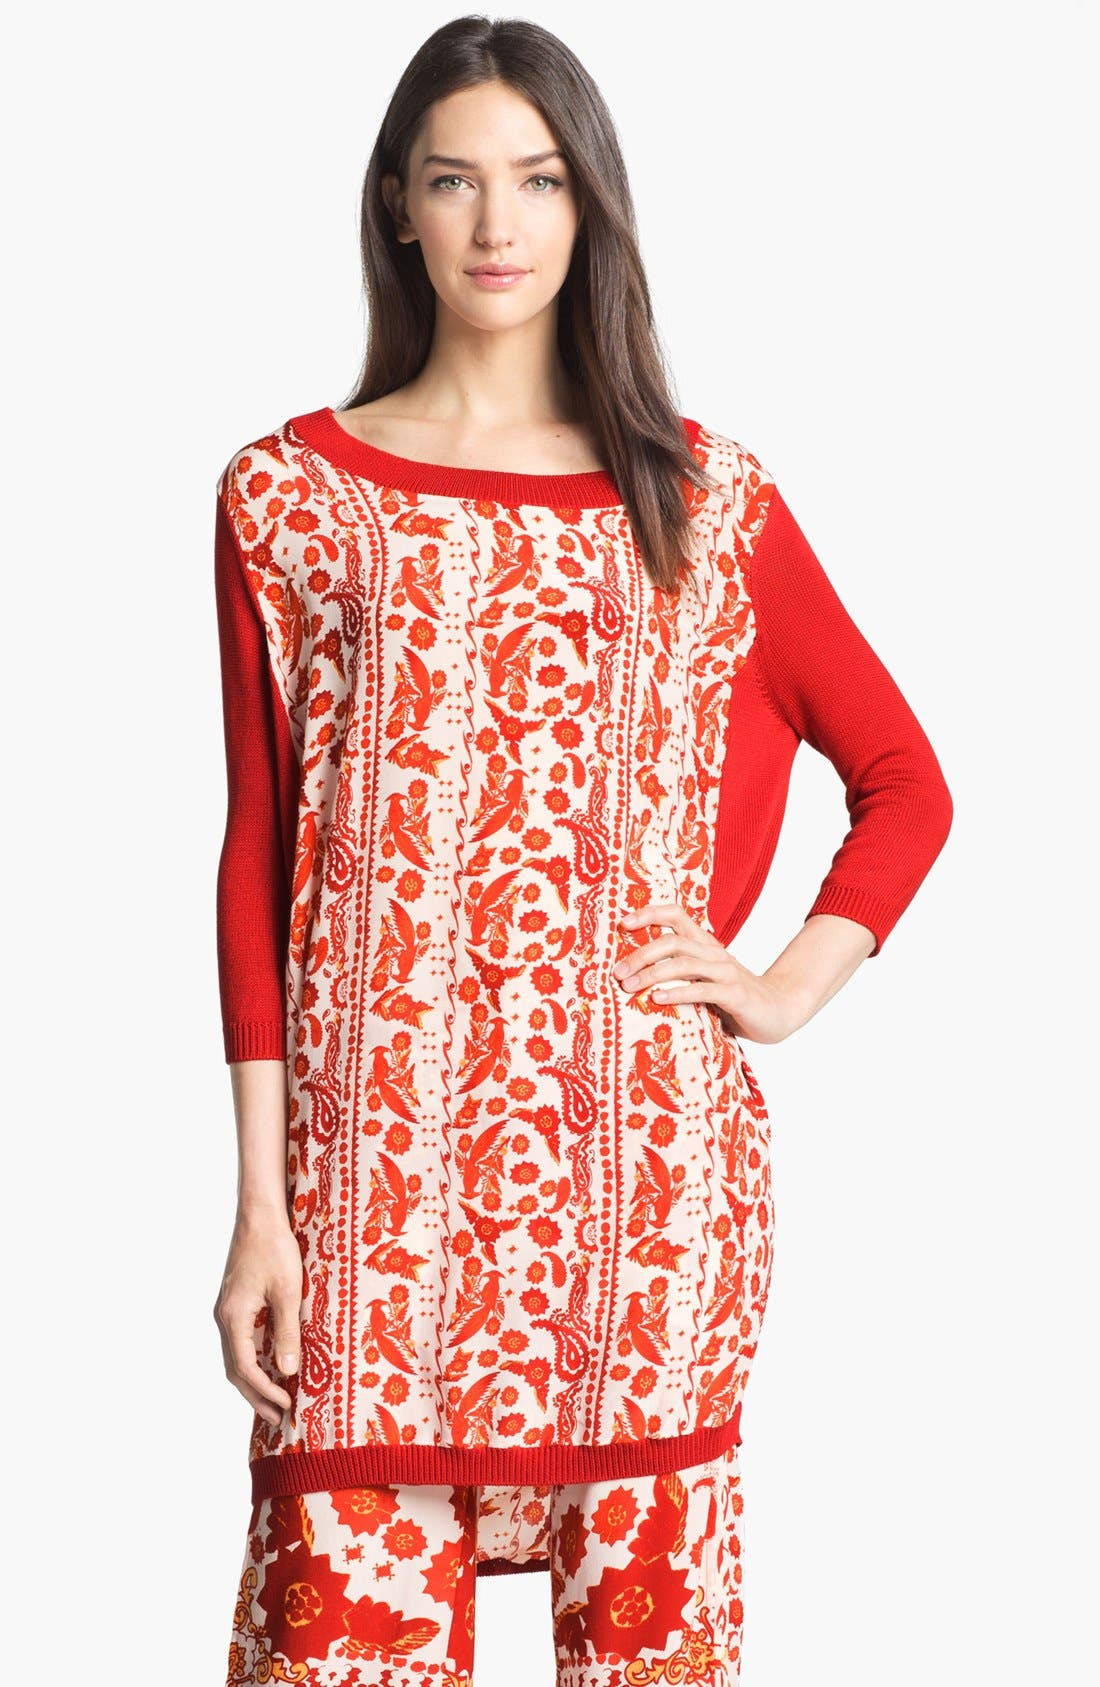 Alternate Image 1 Selected - Rebecca Minkoff 'Jai' Mixed Media Tunic Dress